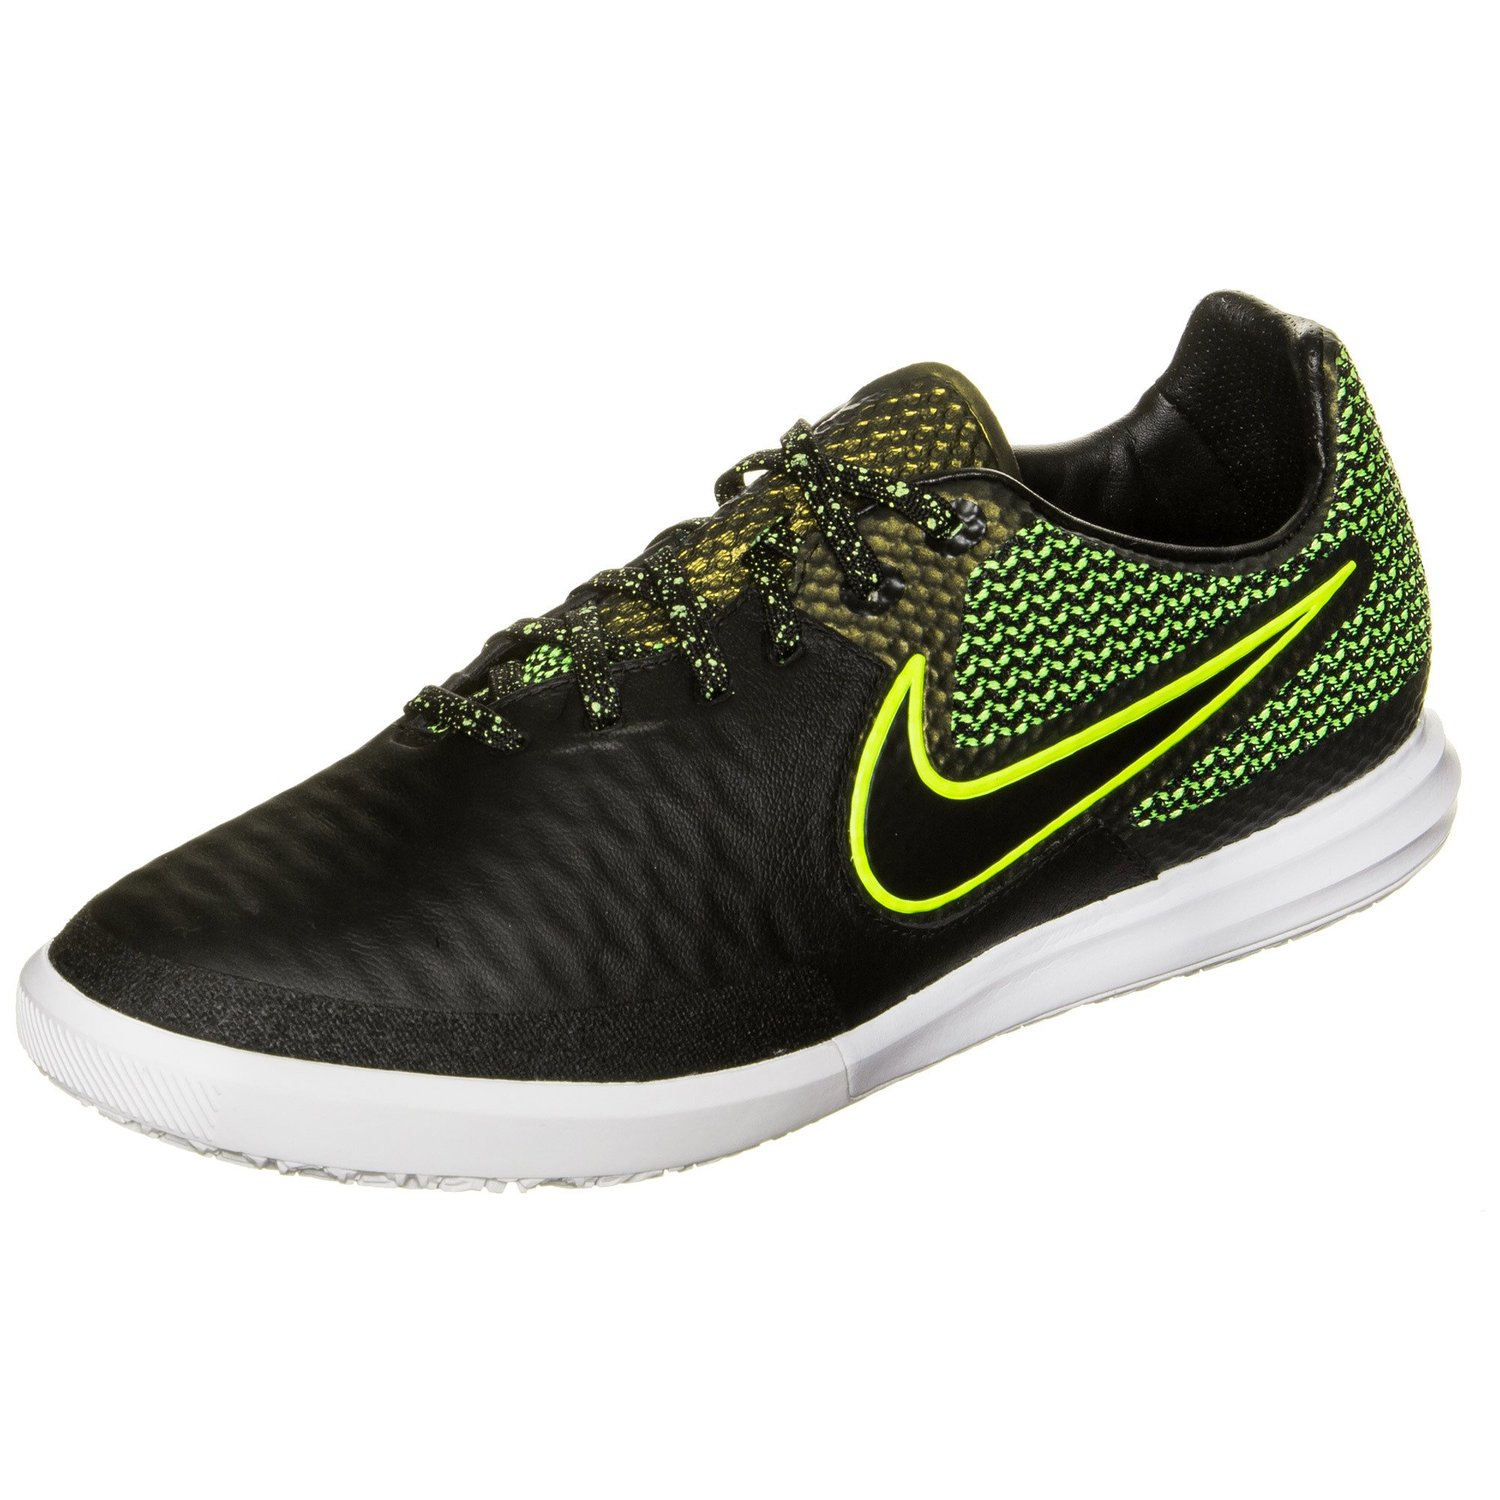 Get Quotations · Nike Magista X Finale IC - Black/Black-Volt-WHITE-Volt -